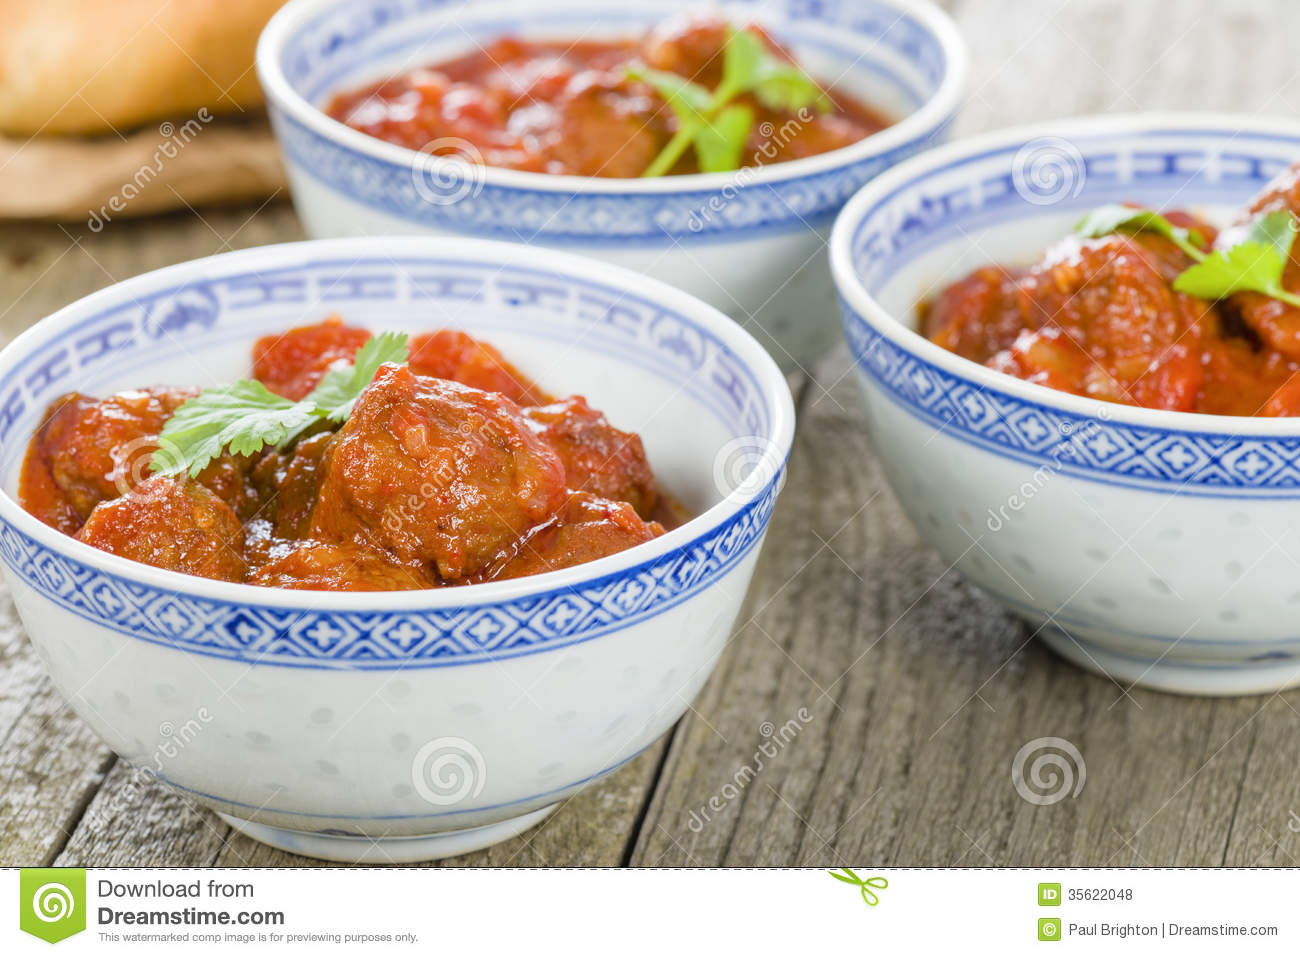 Xiu Mai - Vietnamese spicy pork meatballs in fragrant tomato sauce.